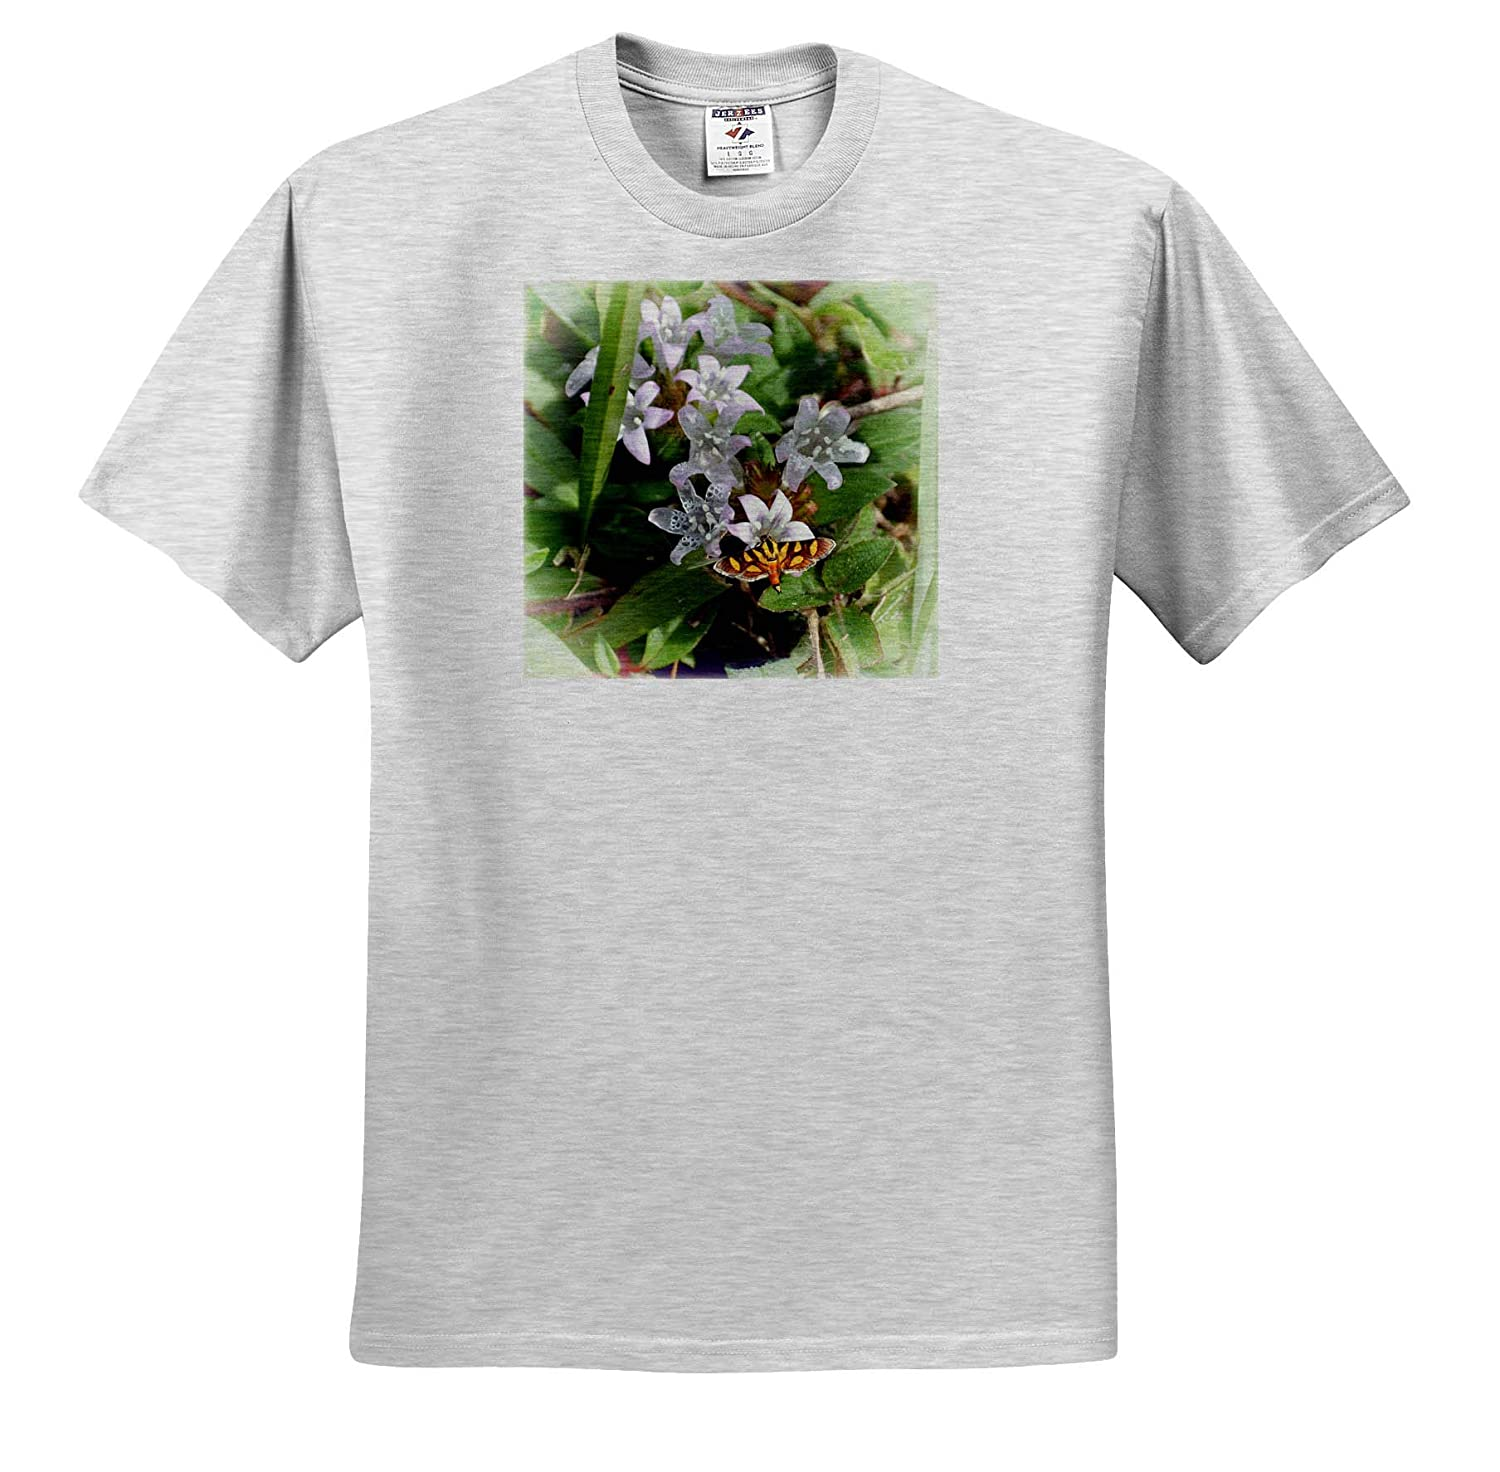 3dRose Susans Zoo Crew Animal T-Shirts Brown and Yellow Moth White Flowers Grass Insect